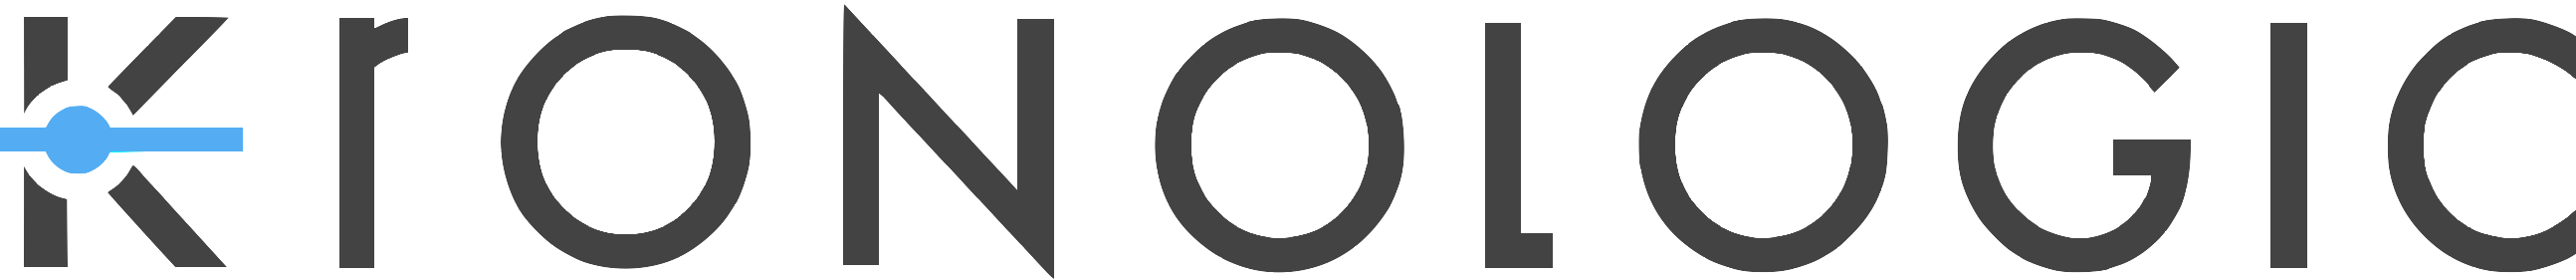 Kronologic High Res PNG Logo with Transparency